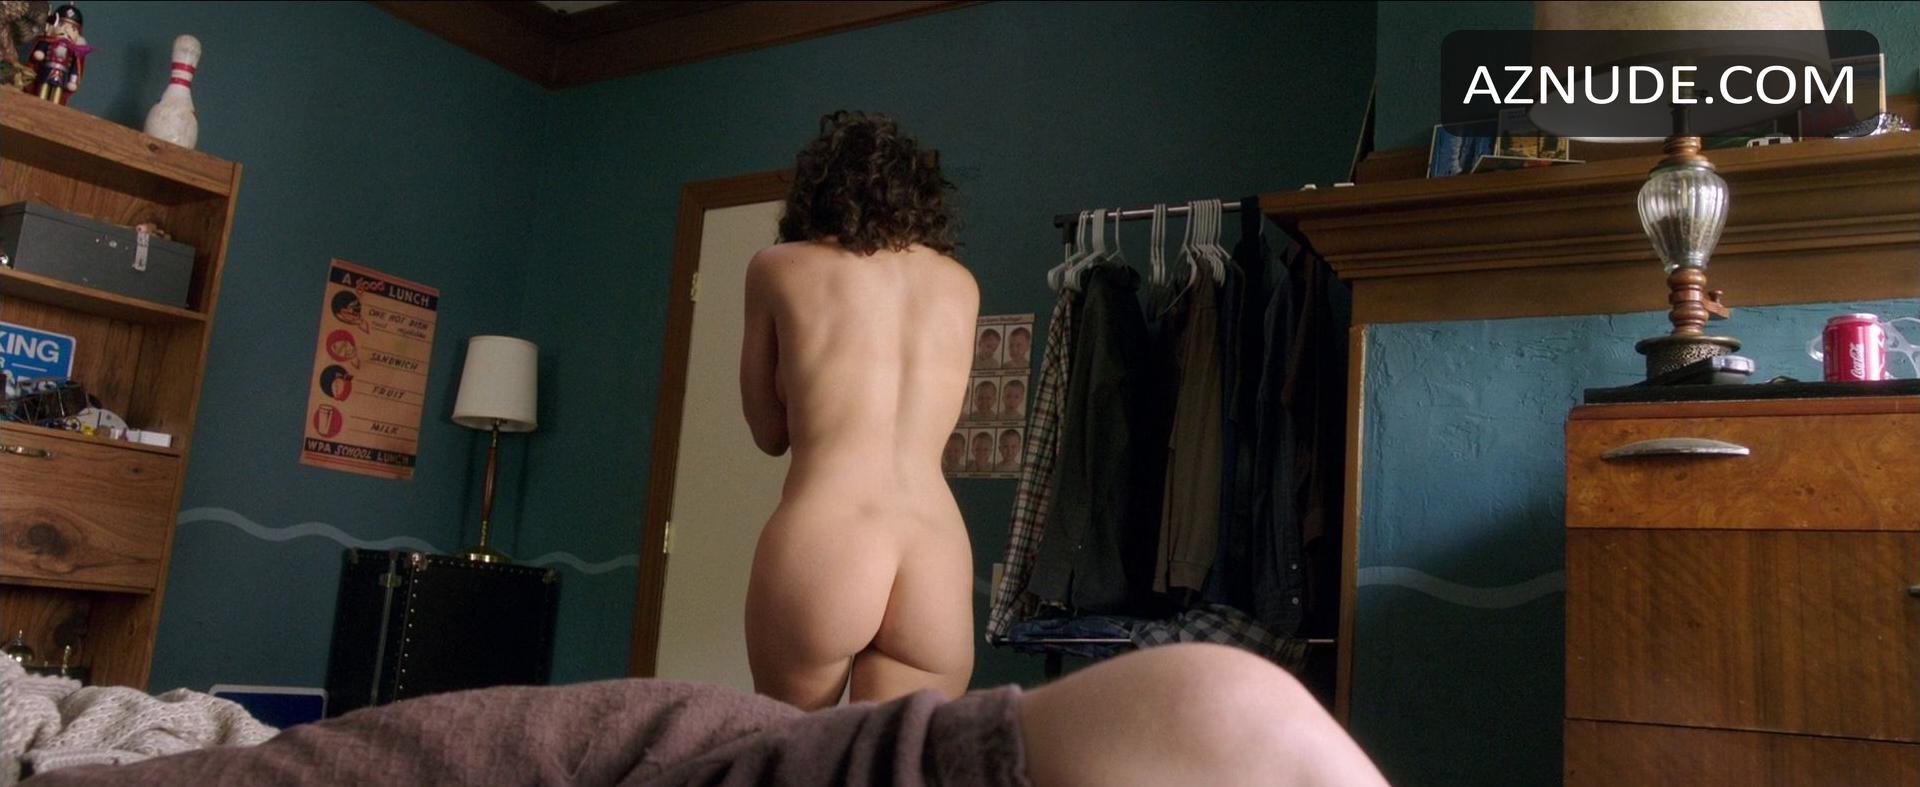 Naked Brothers Pics